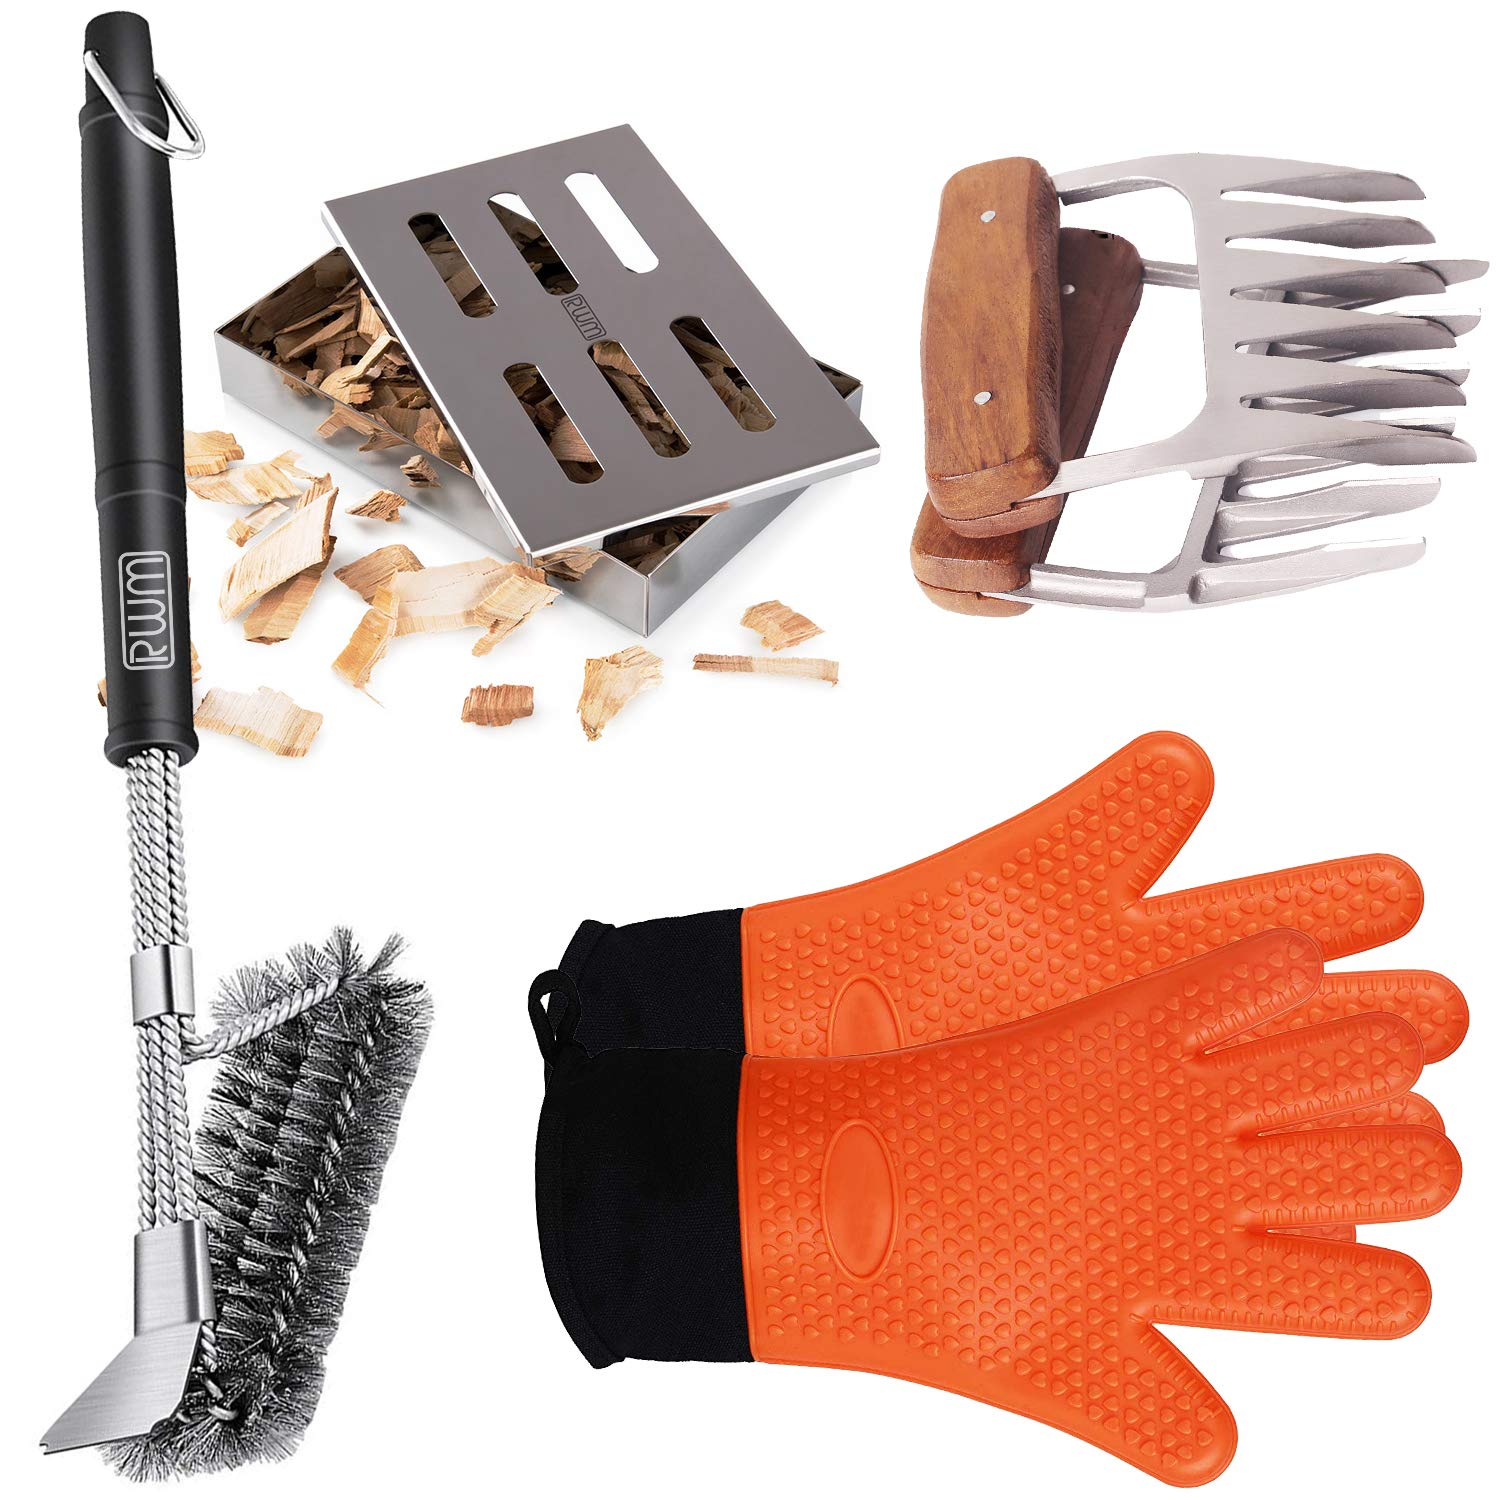 RWM Metal Meat Claws/Smoker Box/Grill Glove and Cleaning Brush Scraper Superior Value Premium Set (4pcs Set) by RWM